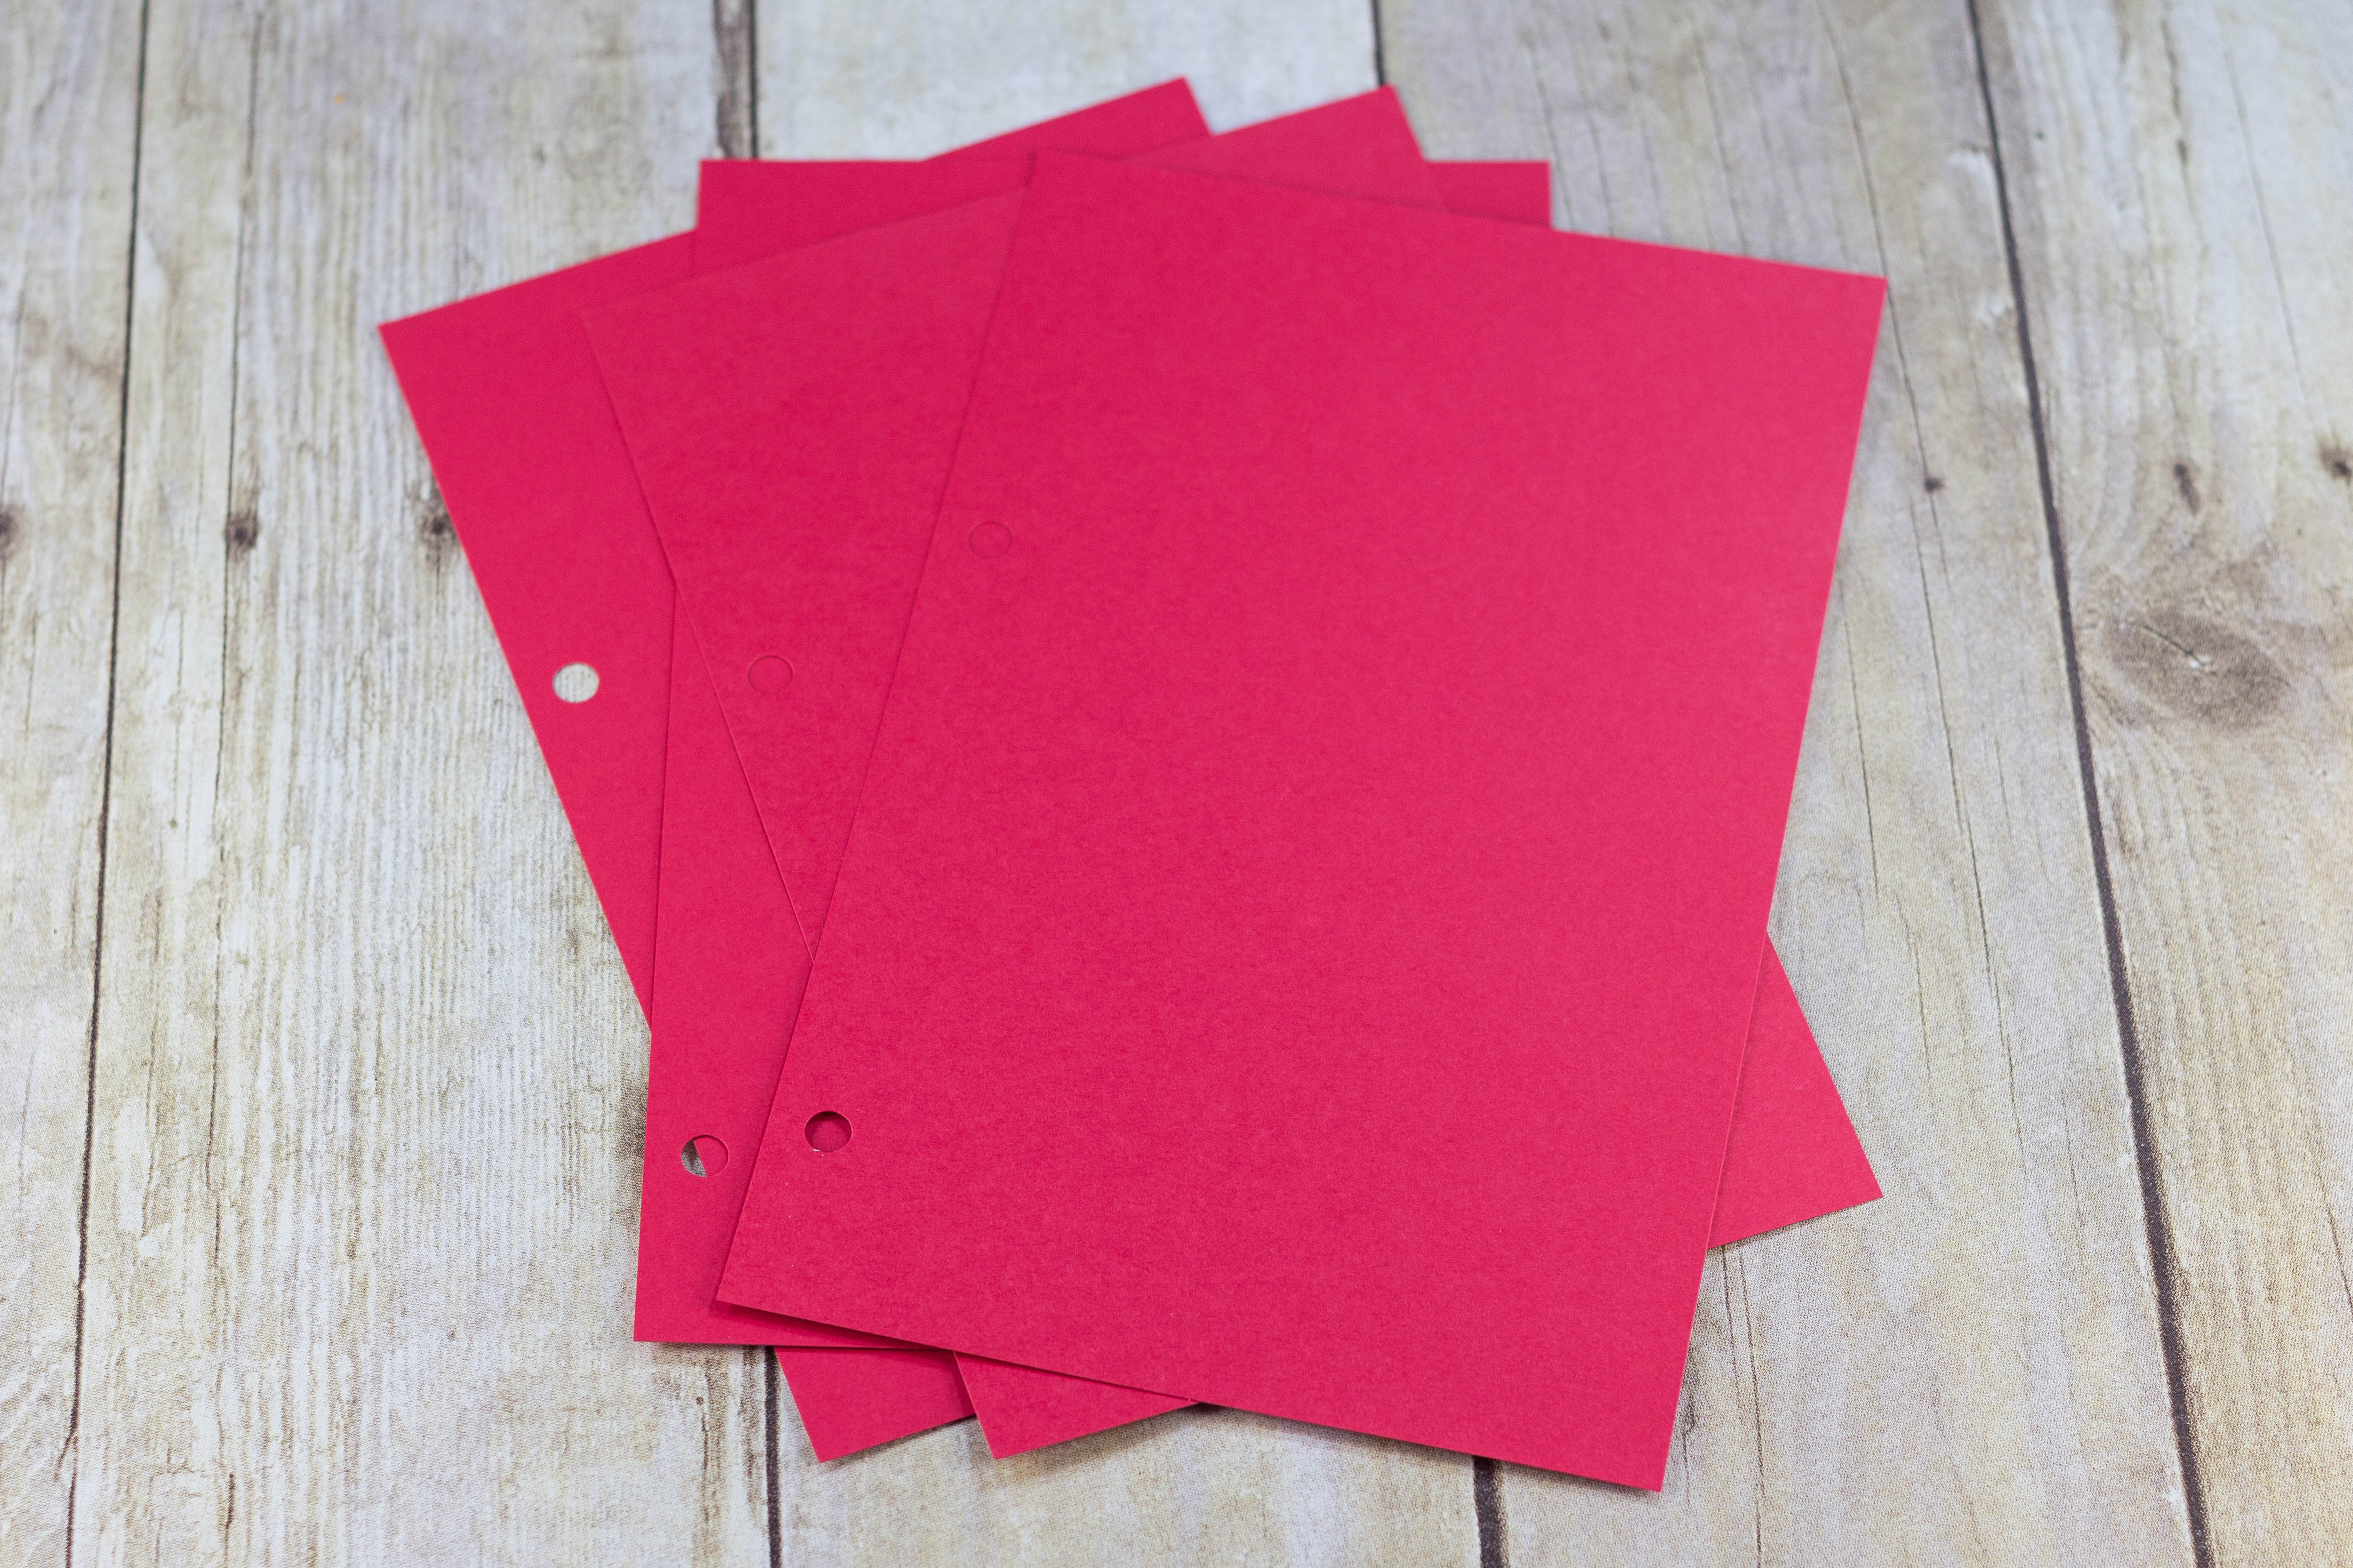 DIY Upcycled Christmas Card Books - Red cardstock cut in halves for gluing Christmas photos and letters. | https://www.roseclearfield.com